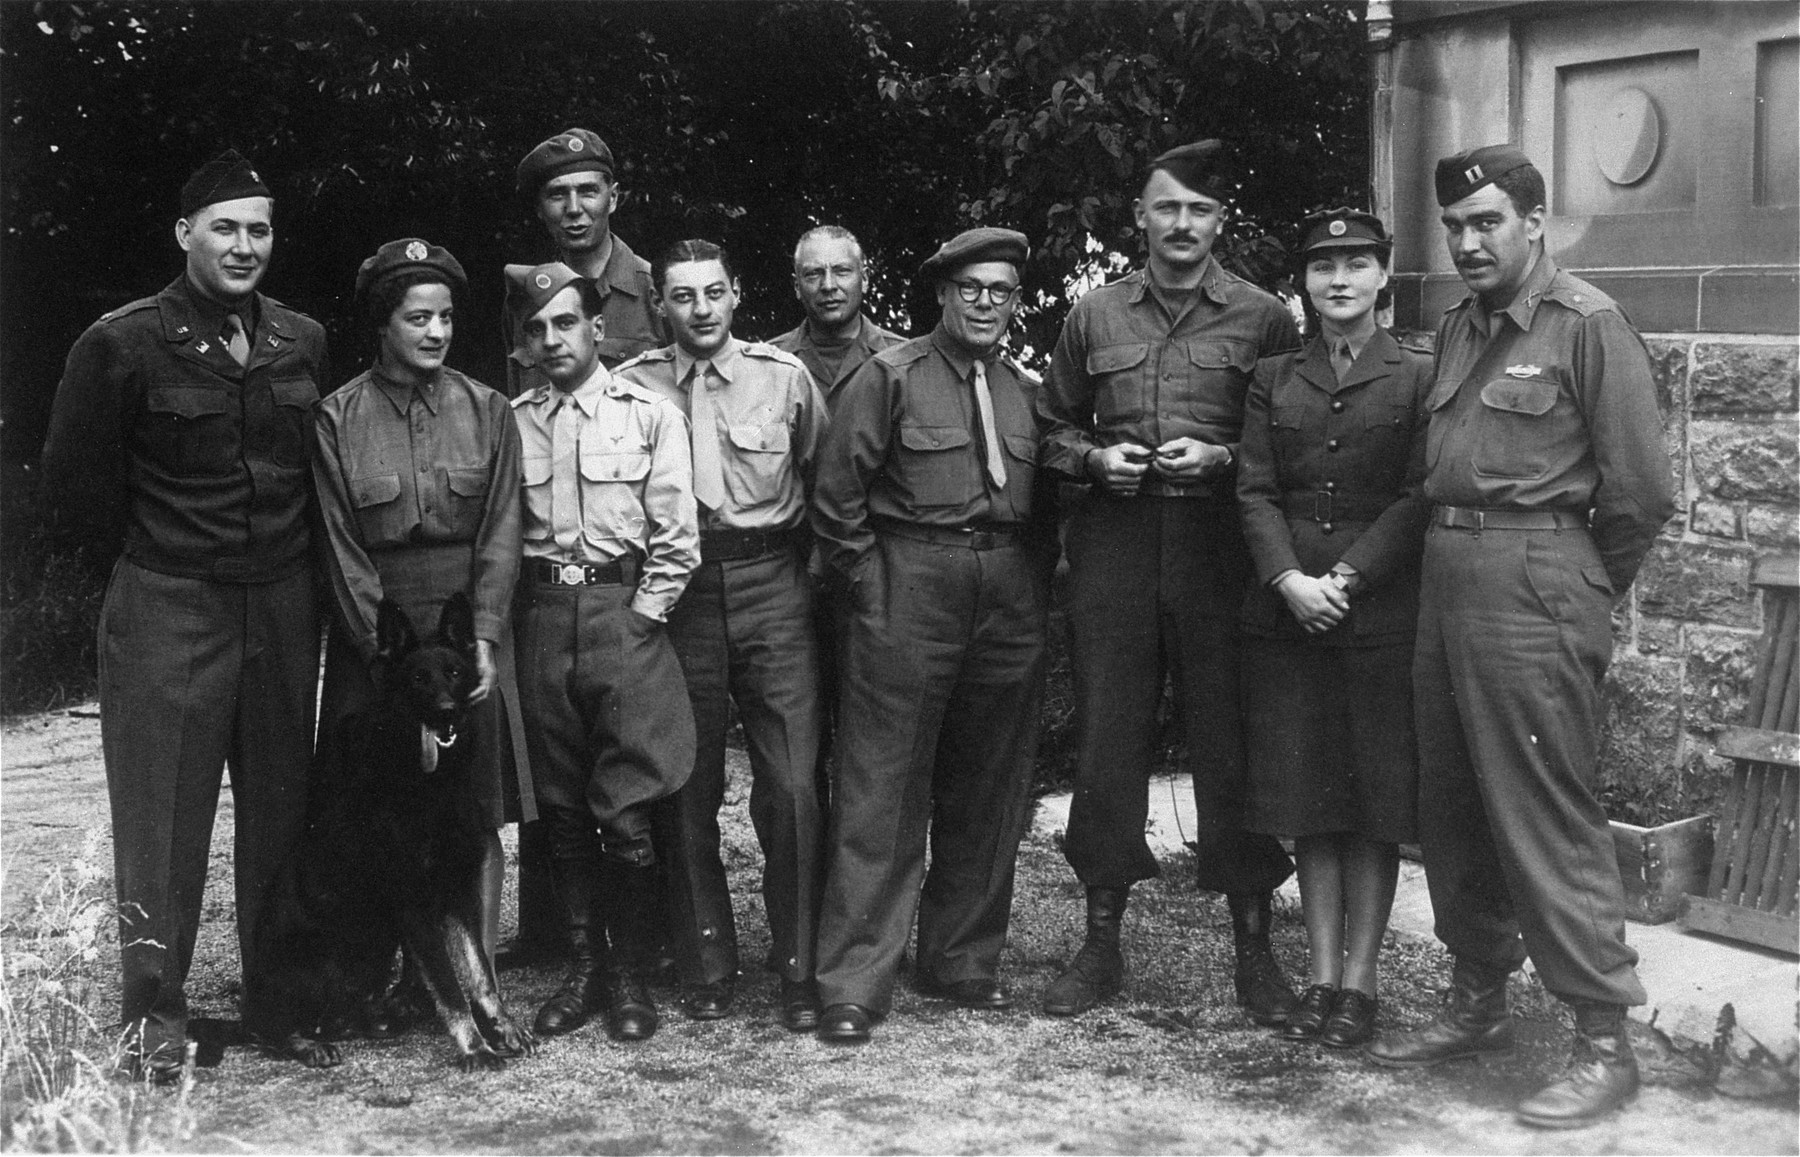 Group portrait of the first UNRRA medical team to arrive at Ohrdruf.    The team was headed by Maureen Honeyball from England, second from right.  Also pictured is Dr. Cecile van Ackere from Brussels, second from left.  The team worked for ten days in late April, 1945, attempting to decontaminate the camp and supply survivors with sufficient nourishment and medical treatment.  Sidney Krasnoff served as a medical officer with the Thirteenth Field Hospital in European Theatre Operations.  After reaching Buchenwald, Krasnoff was assigned to the UNRRA medical team at Ohrdruf.